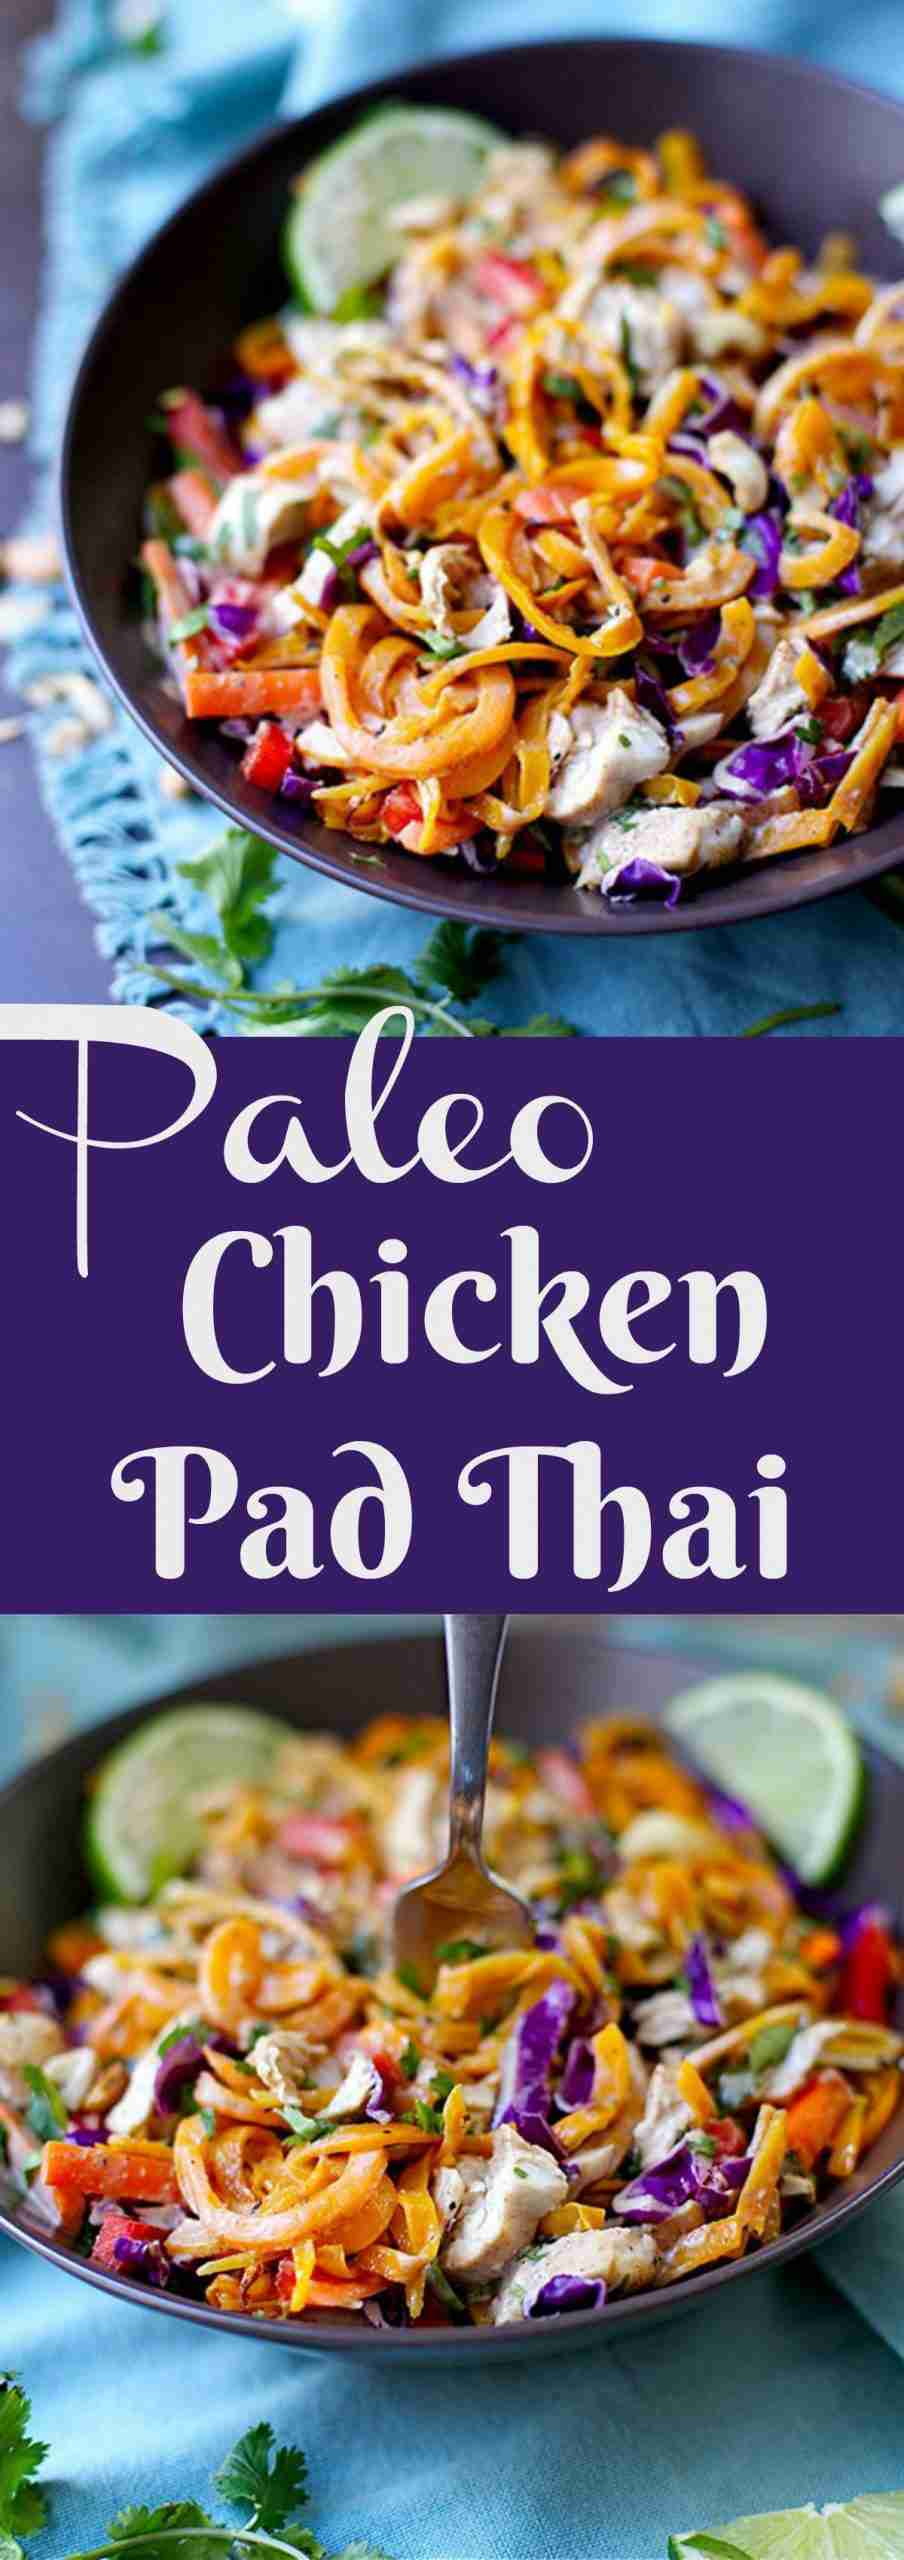 Paleo Chicken Pad Thai – Wholesomelicious